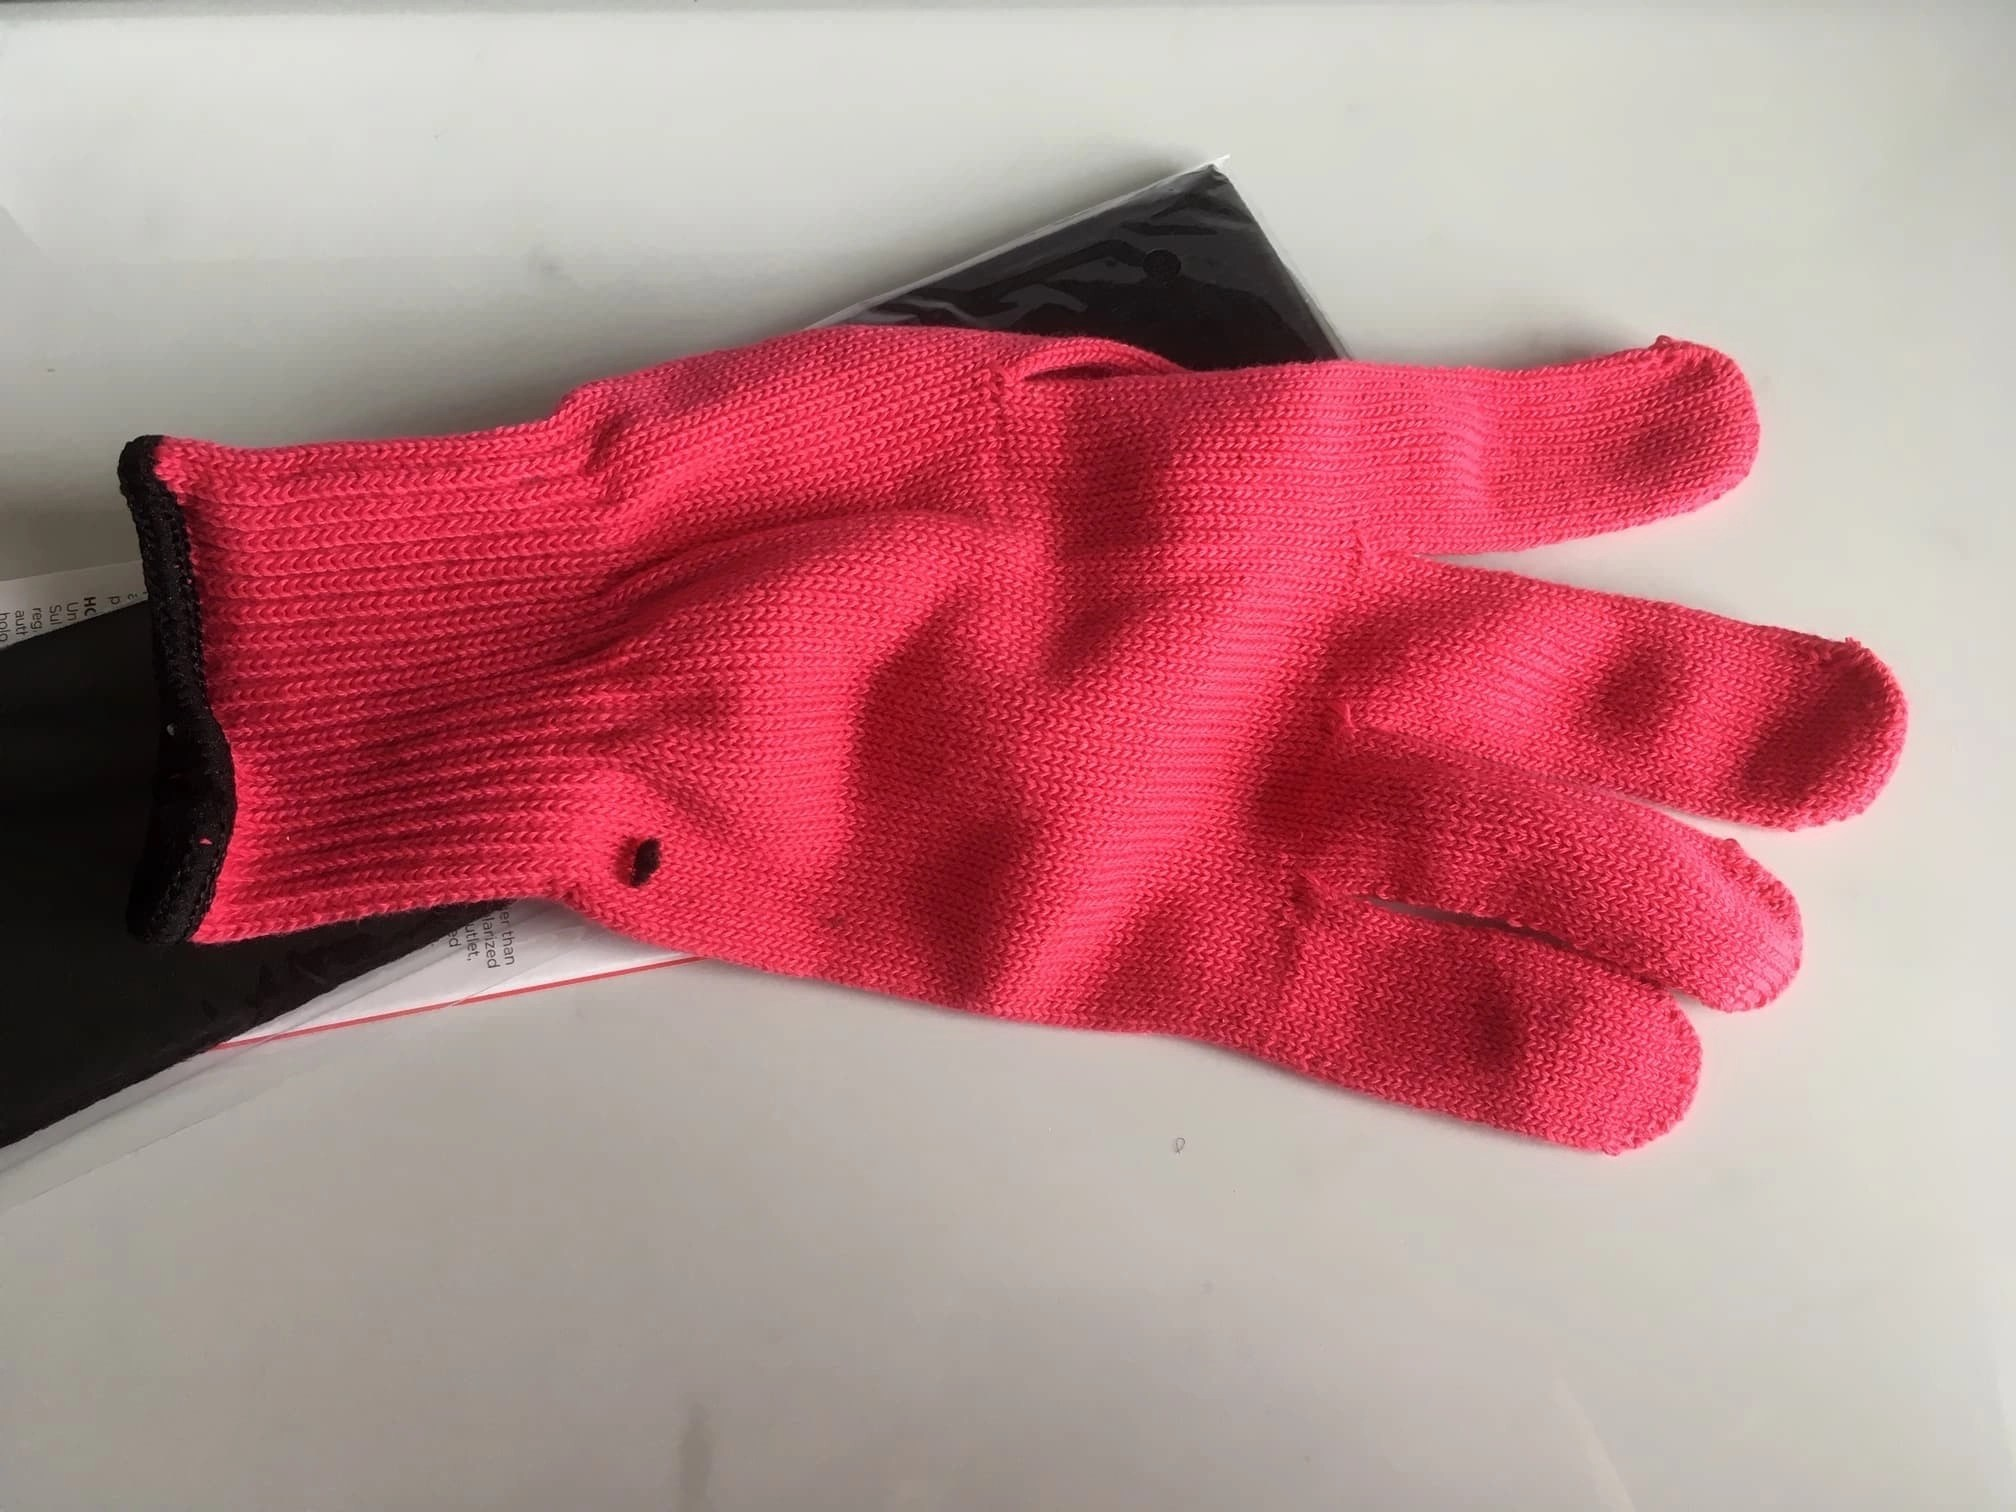 Sultra Glove - Pink Shade